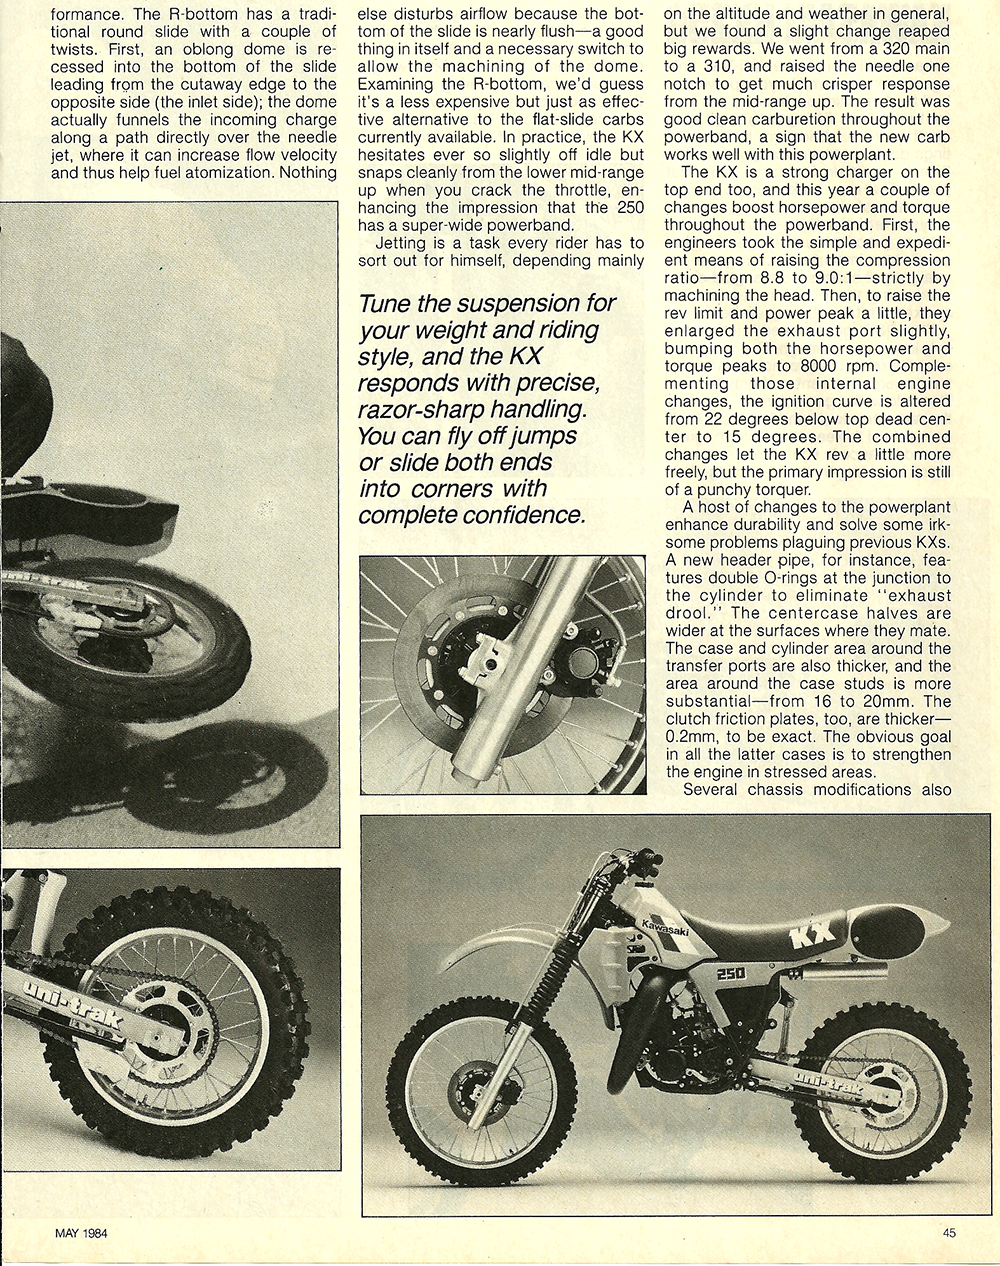 1984 Kawasaki KX250 road test 4.jpg